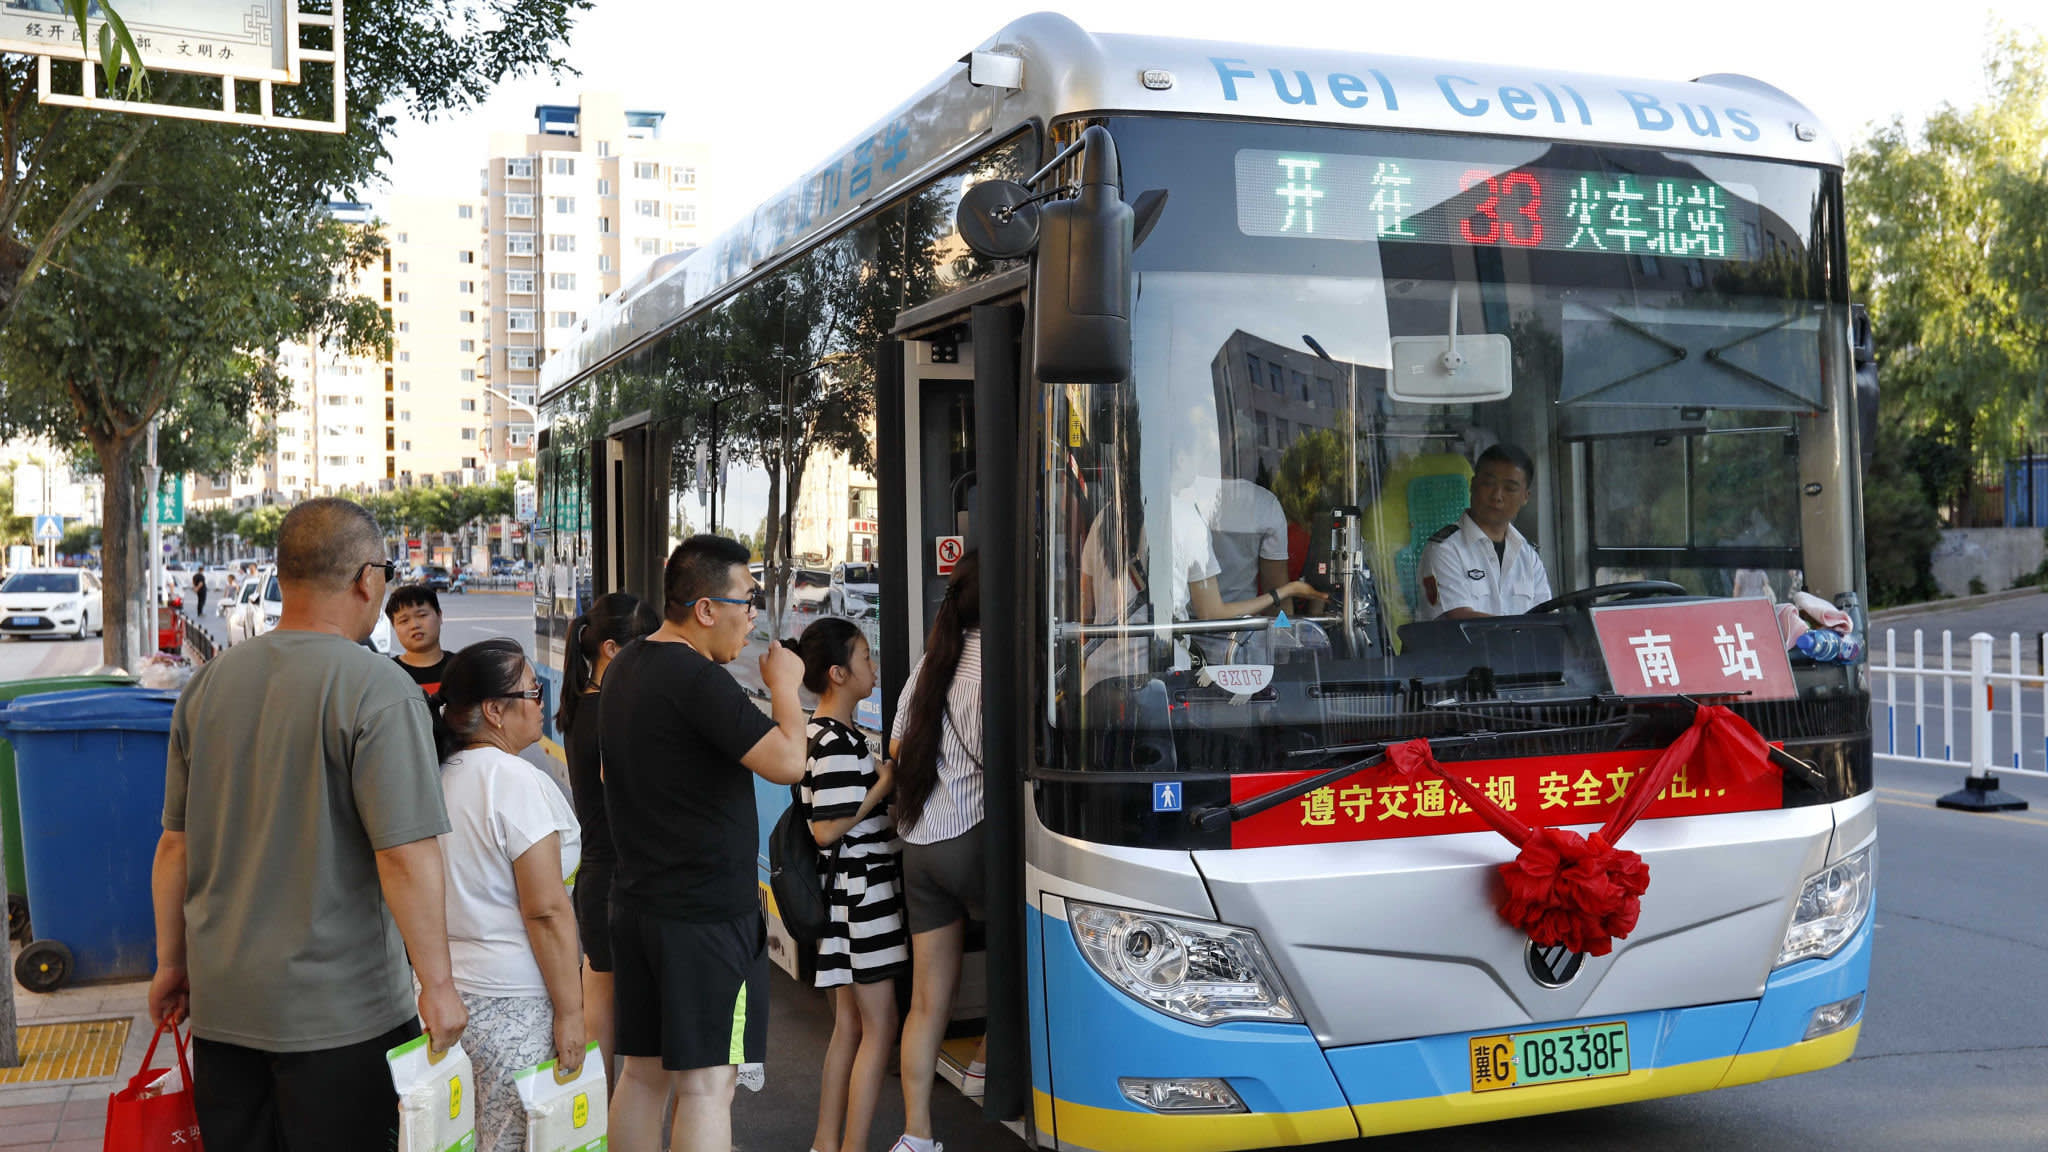 Hydrogen power: China backs fuel cell technology | Financial Times